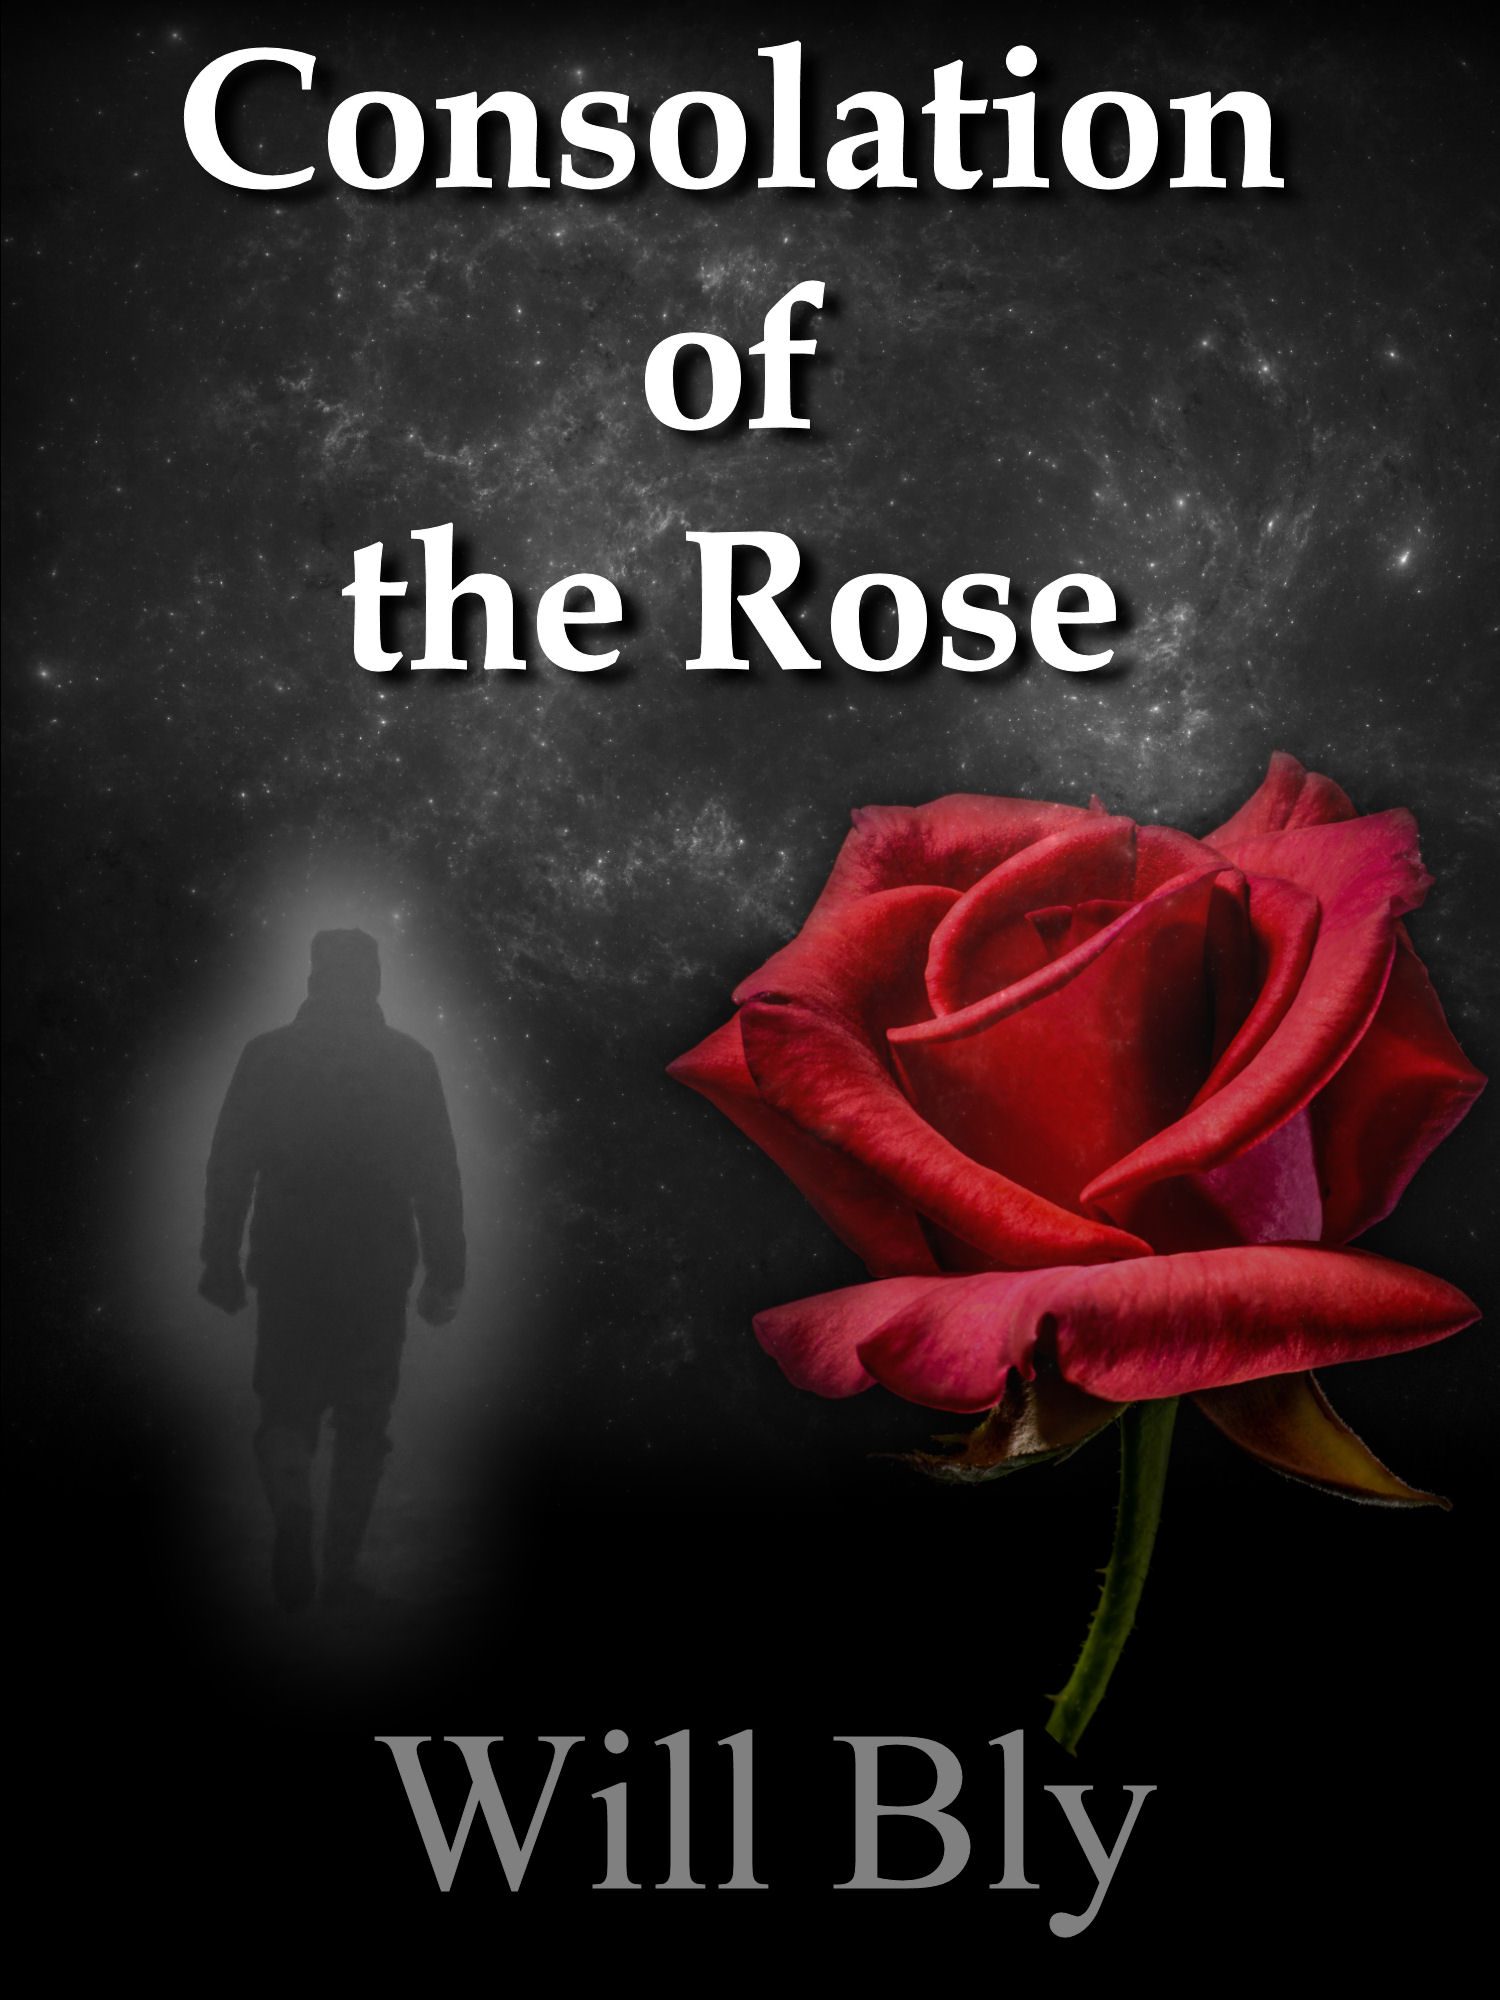 Consolation of the Rose by Will Bly